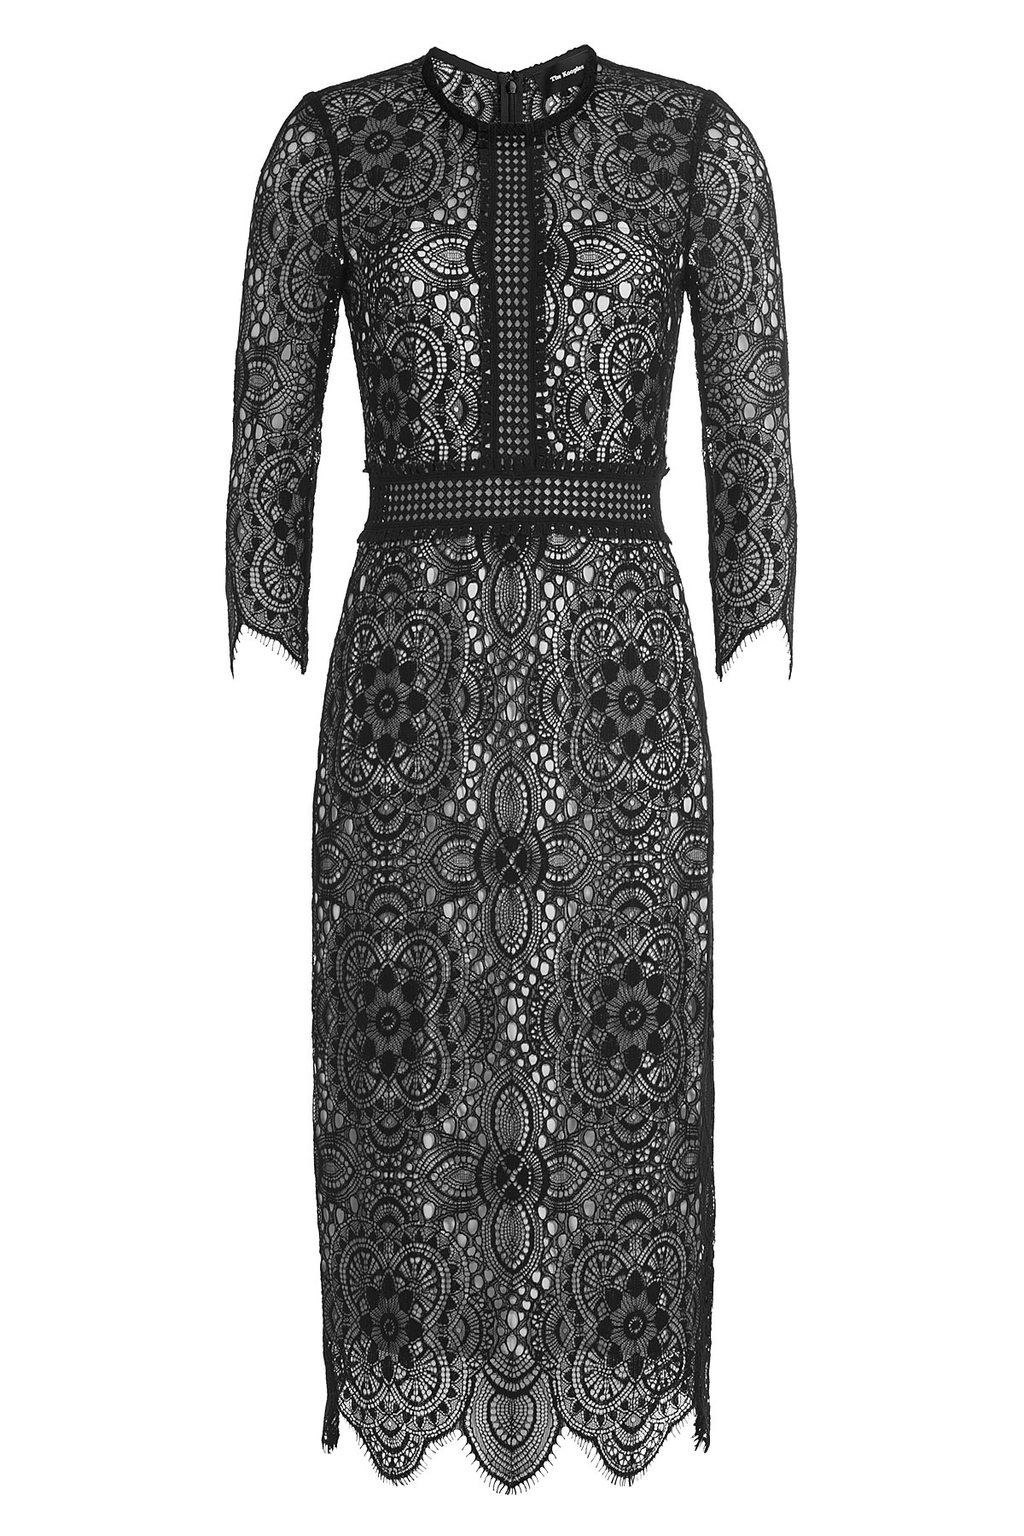 Lace Dress With Contrast Lining - style: shift; length: below the knee; pattern: plain; predominant colour: black; occasions: evening; fit: body skimming; fibres: cotton - mix; neckline: crew; sleeve length: 3/4 length; sleeve style: standard; texture group: lace; pattern type: fabric; season: a/w 2016; wardrobe: event